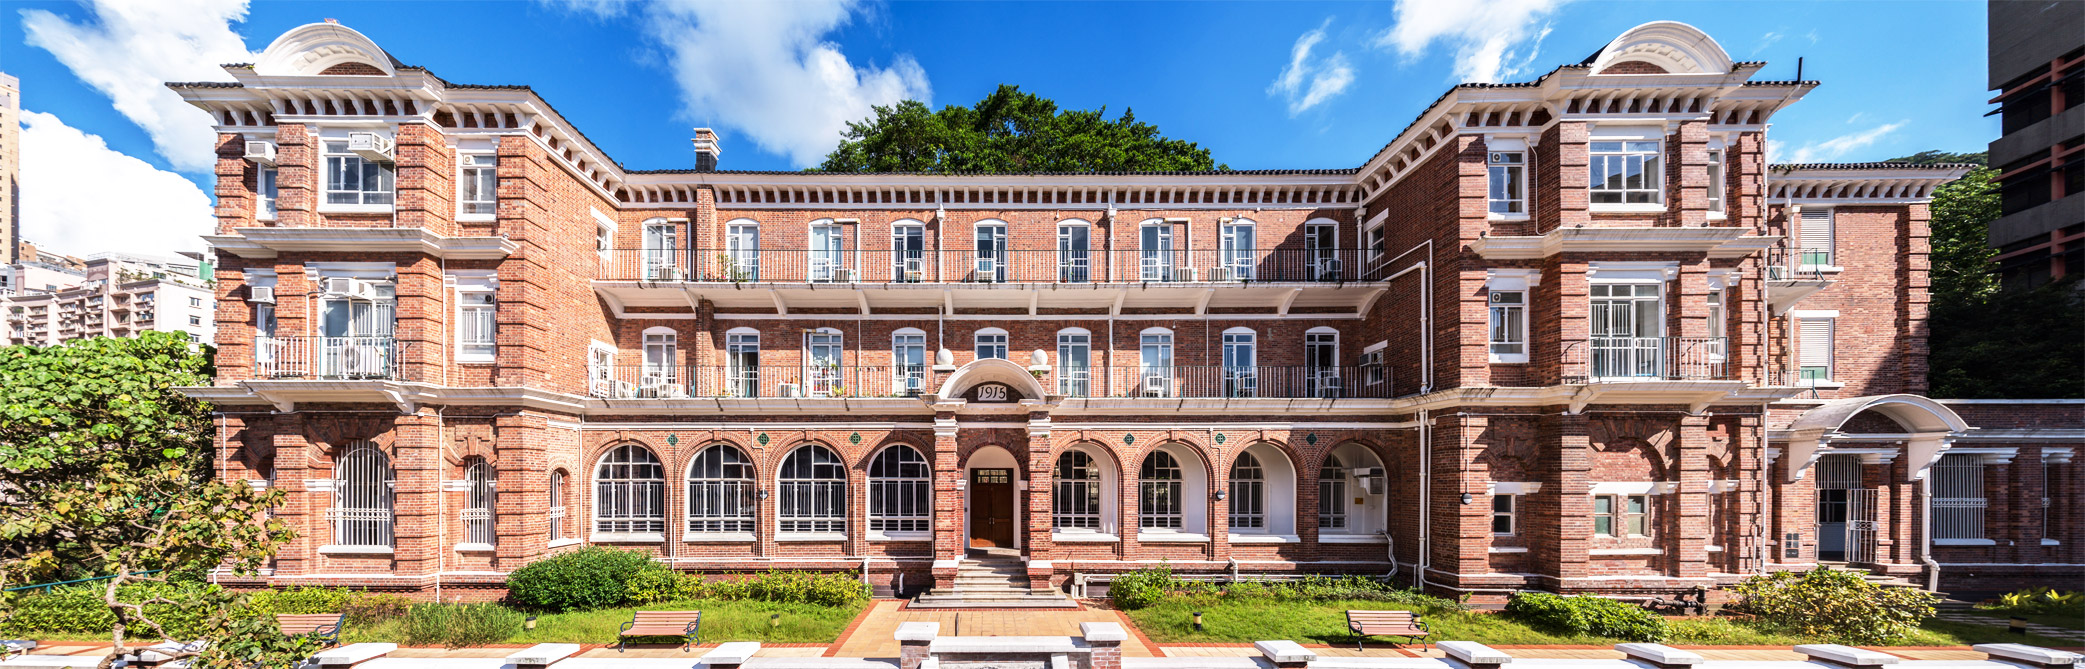 May Hall, The University of Hong Kong